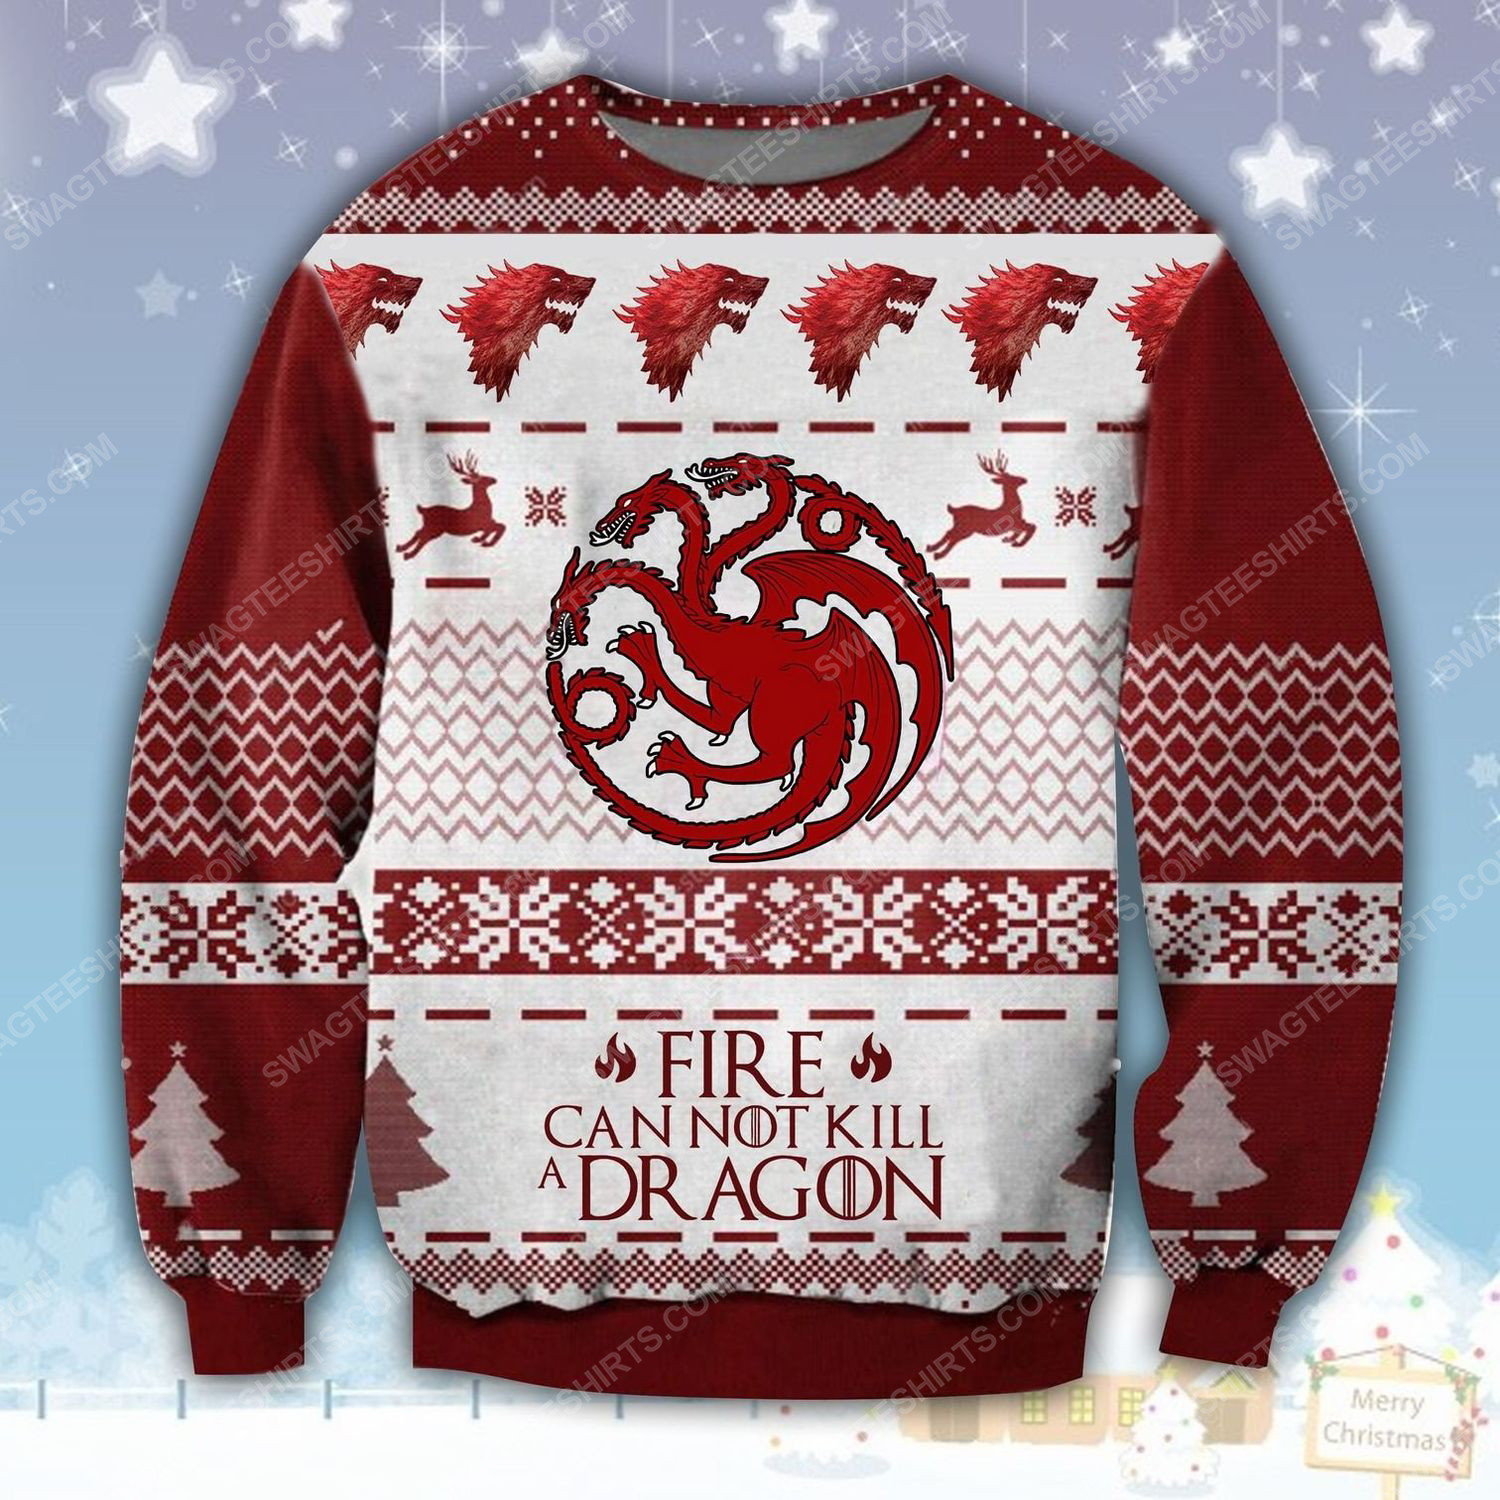 Game of thrones fire cannot kill a dragon ugly christmas sweater